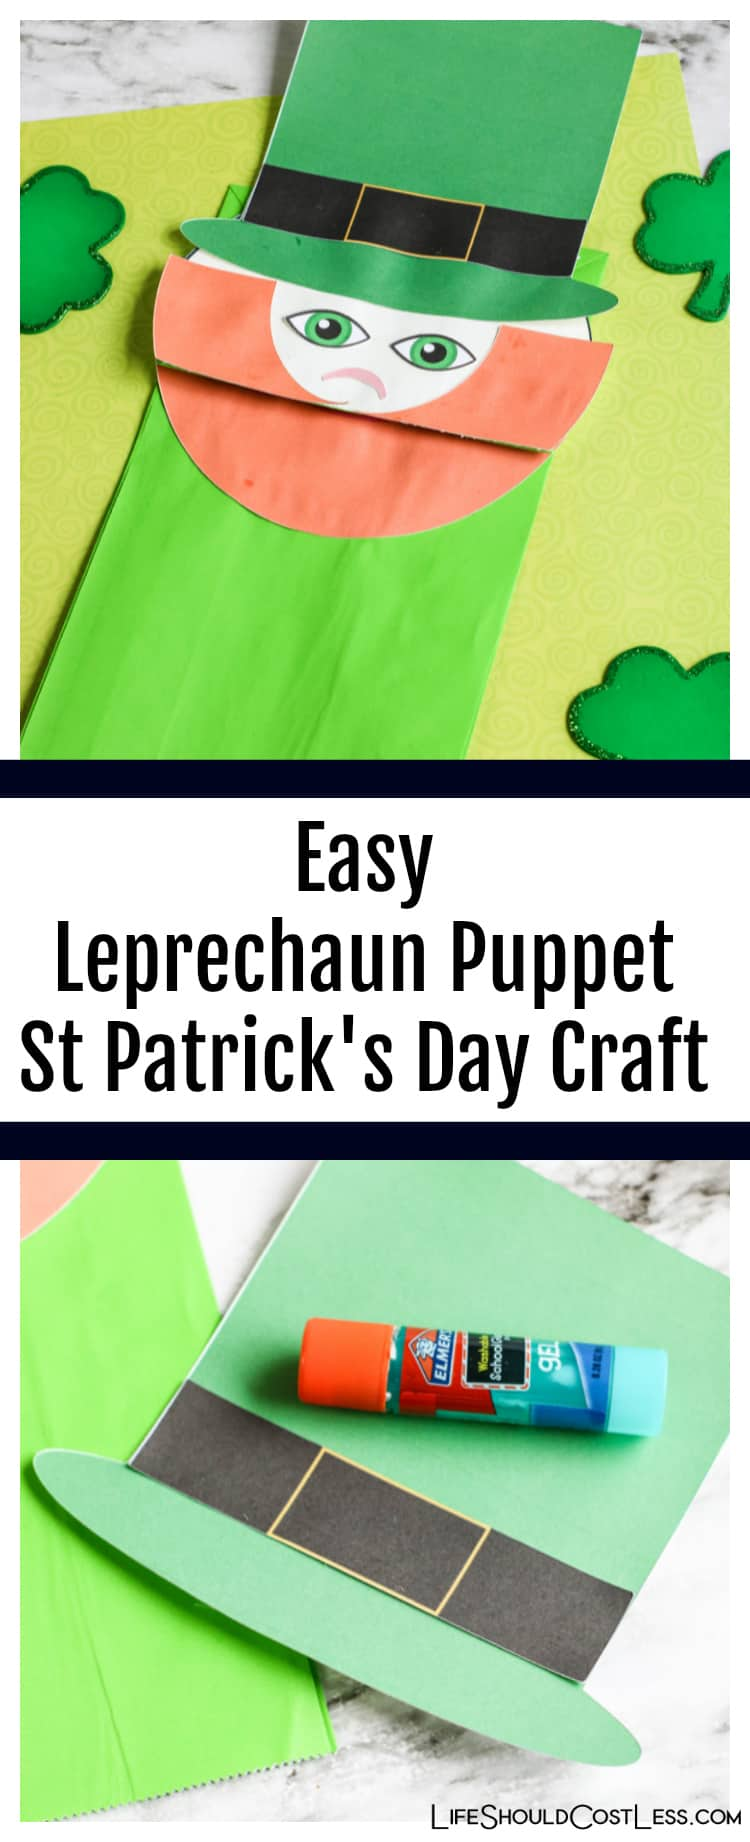 Easy Leprechaun Puppet St Patrick's Day Craft. Paper Bag lifeshouldcostless.com